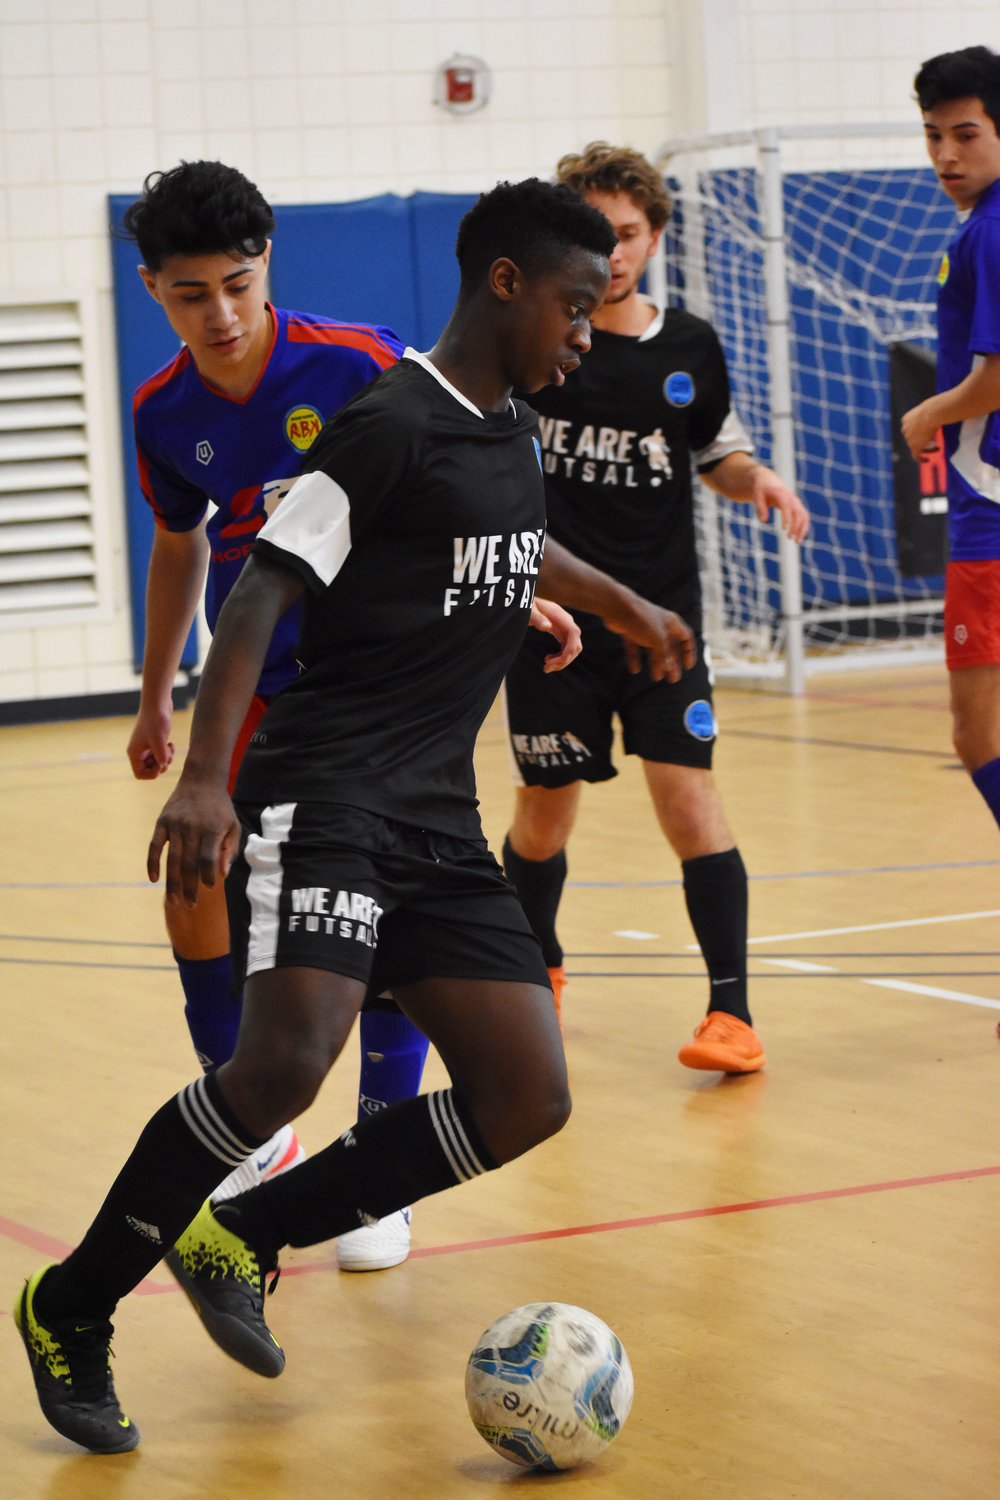 Farai Mutatu of the 99 CIty boys Academy USYF National Qualifying team